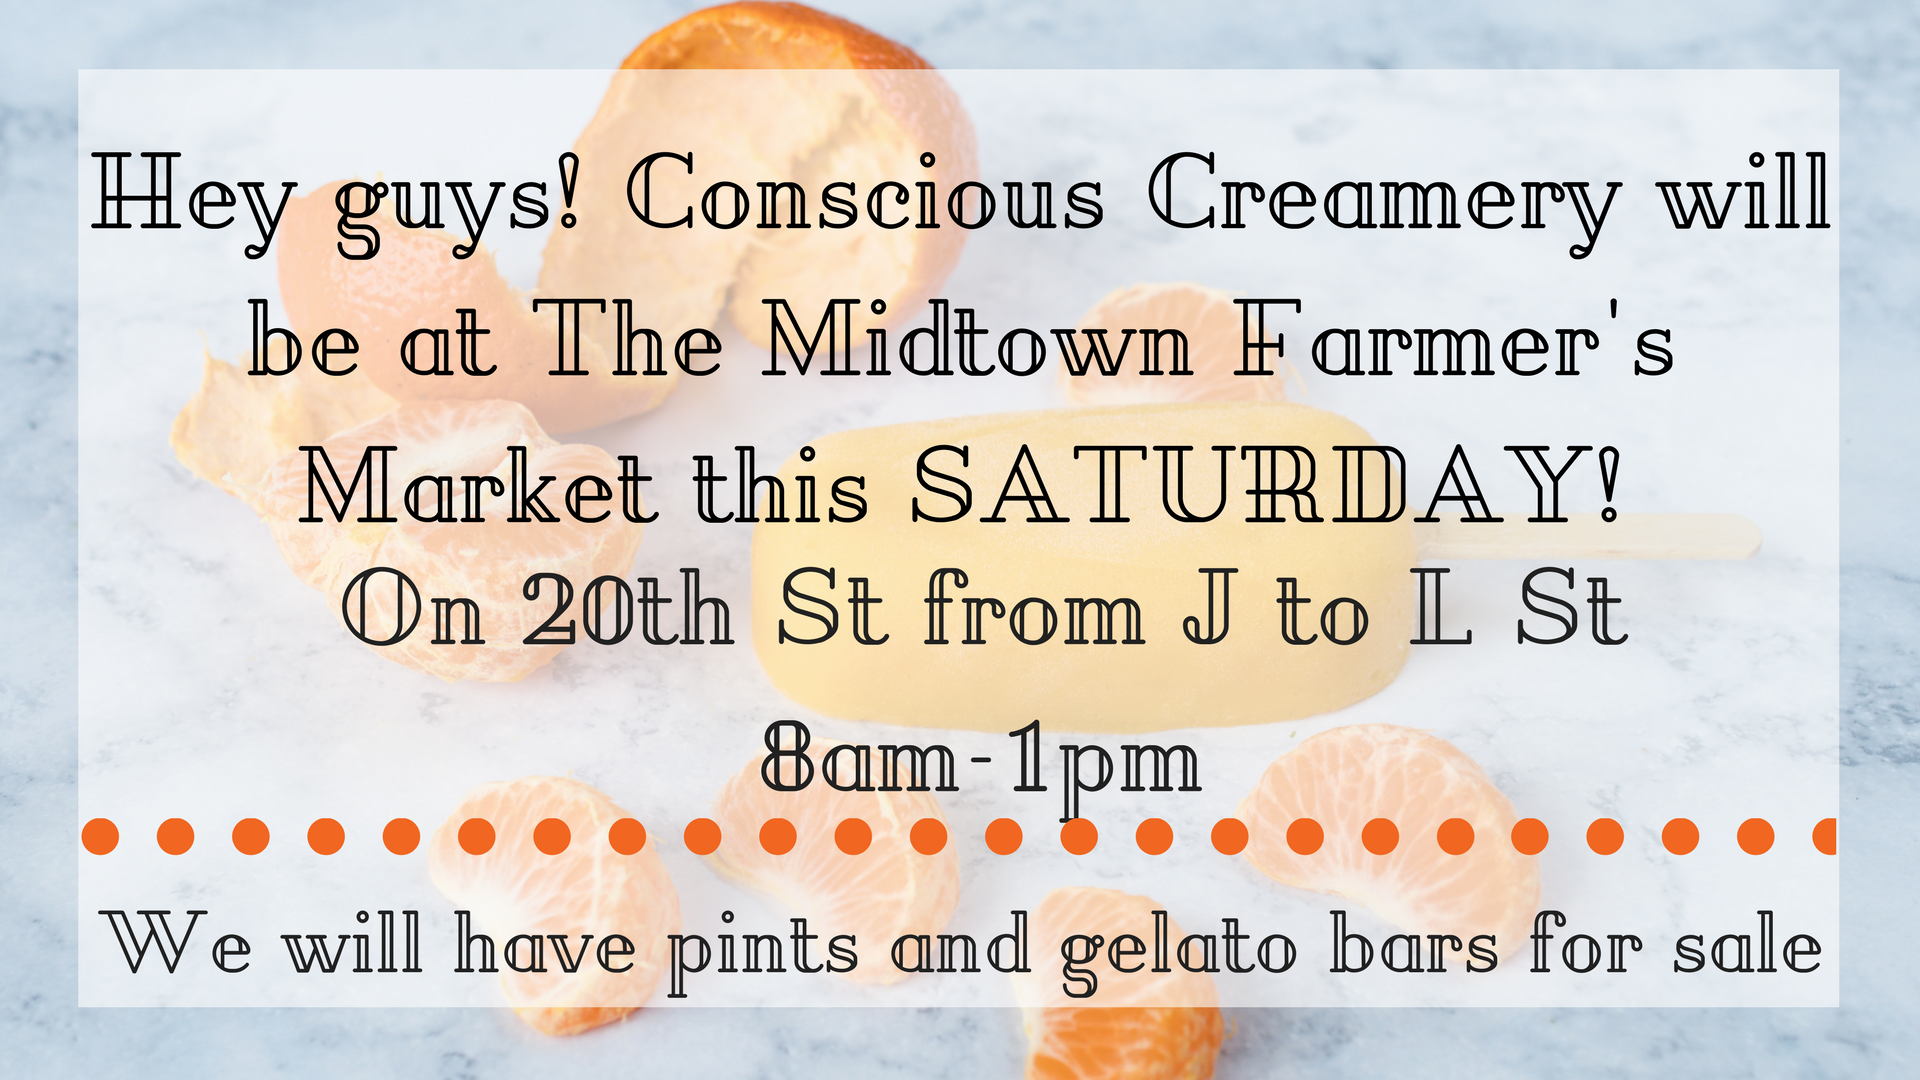 Midtown Farmer's Market this Saturday (1).png